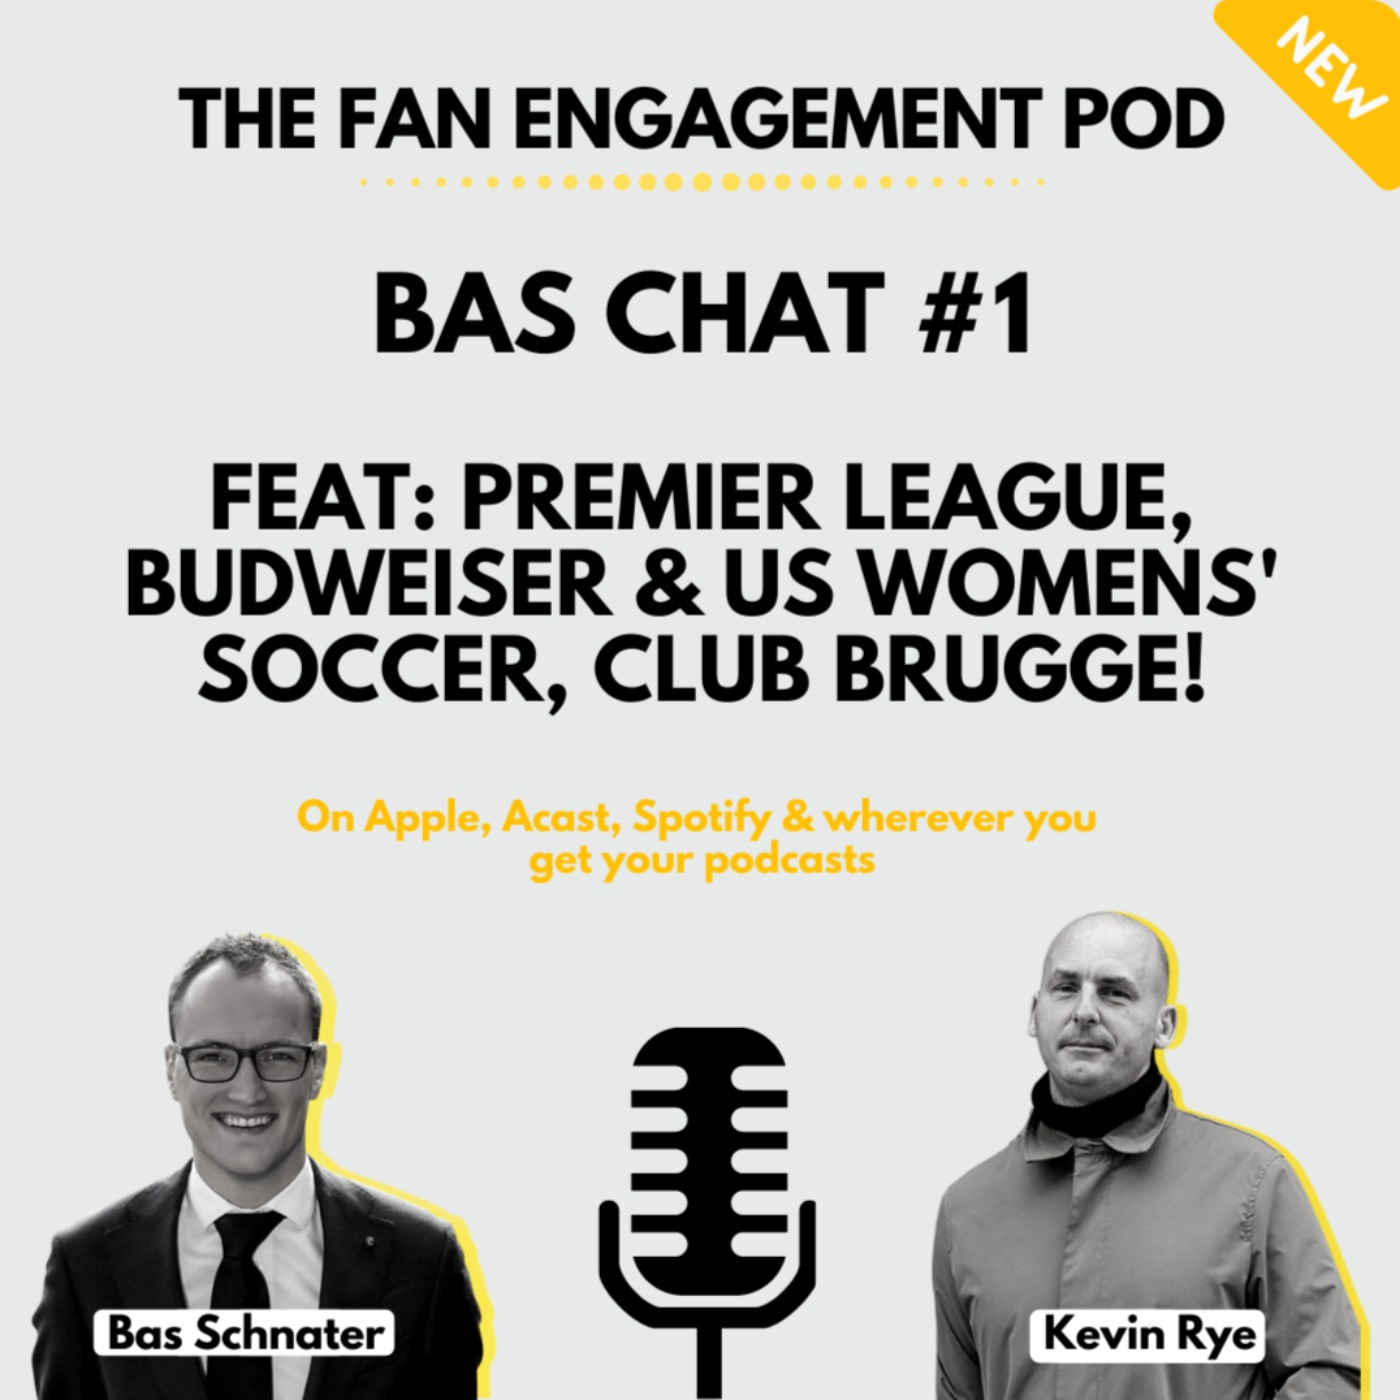 Bas Chat #1